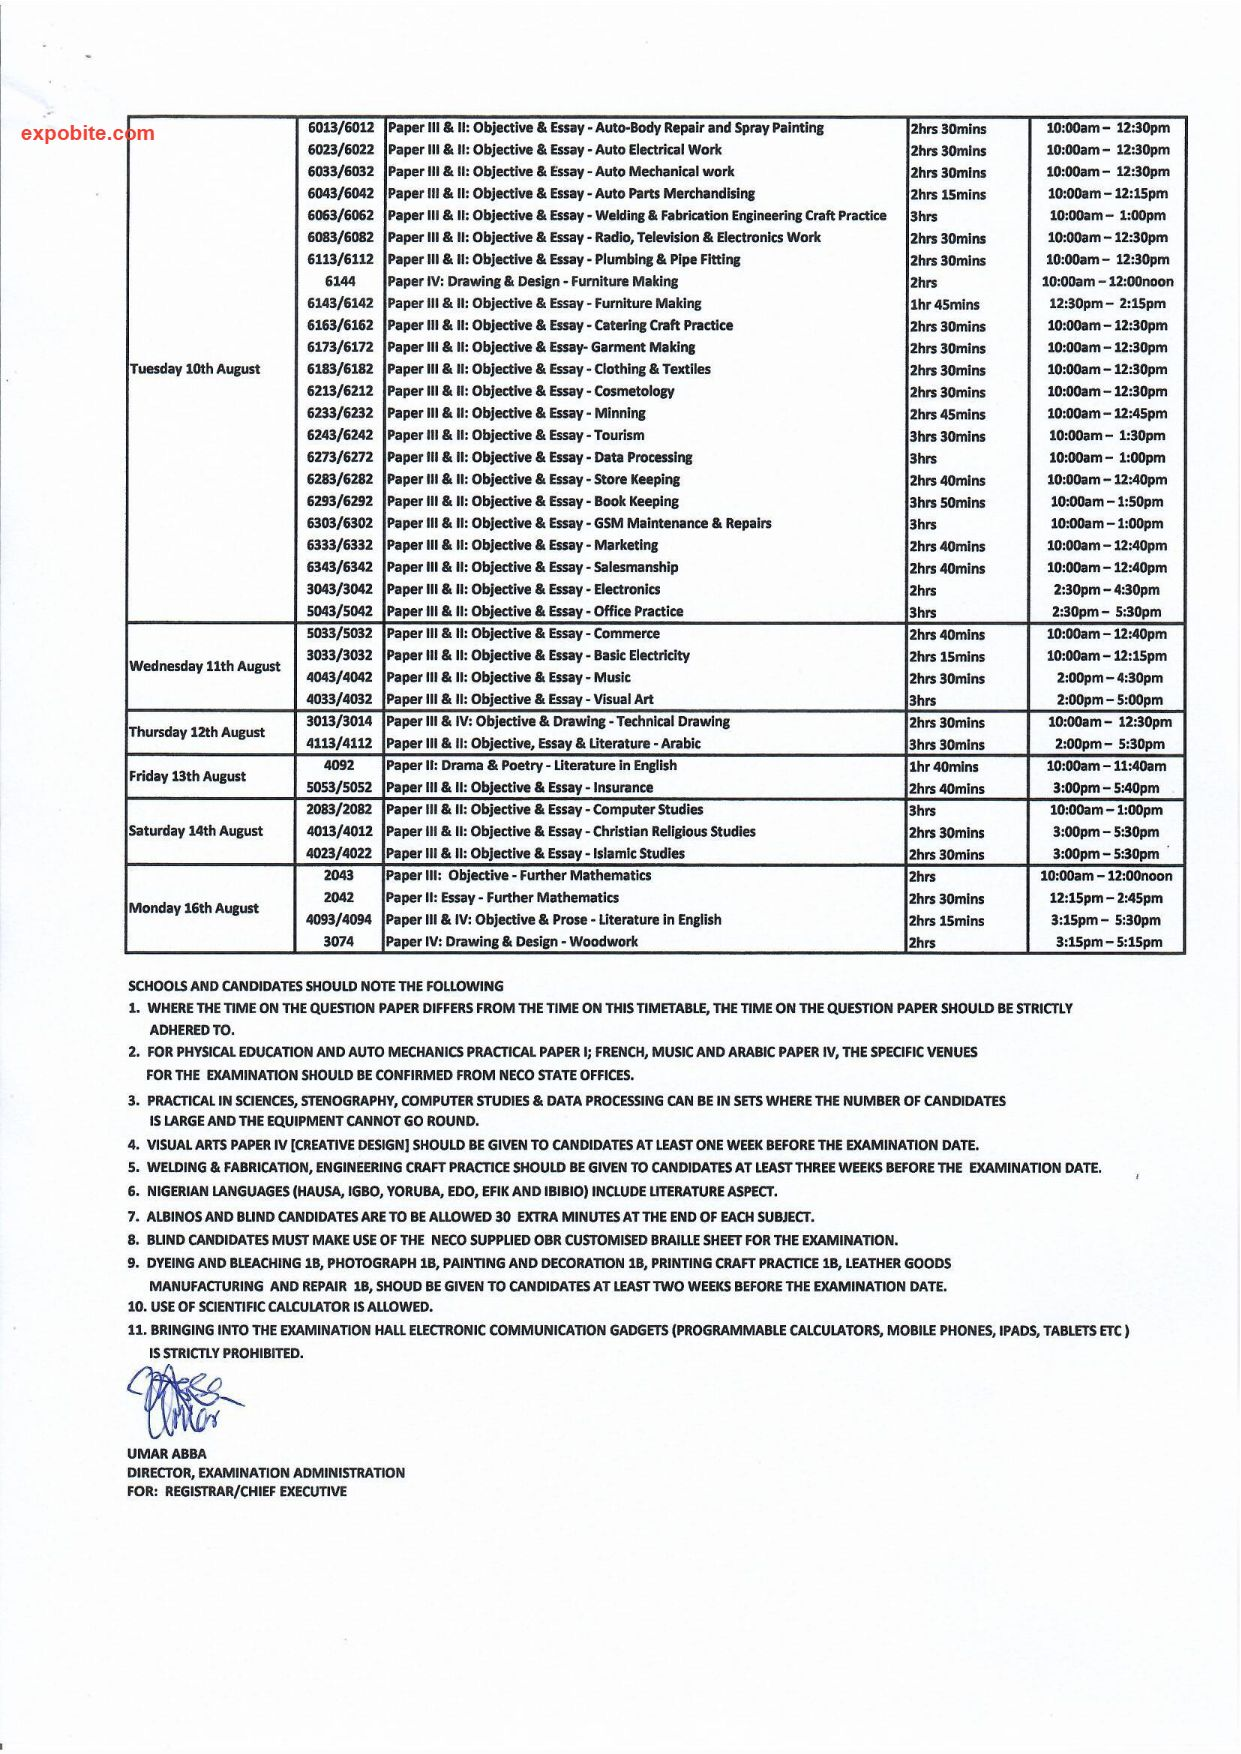 2021-SSCE-INTERNAL-TIMETABLE-SIGNED-min-1 downloaded from expobite_com